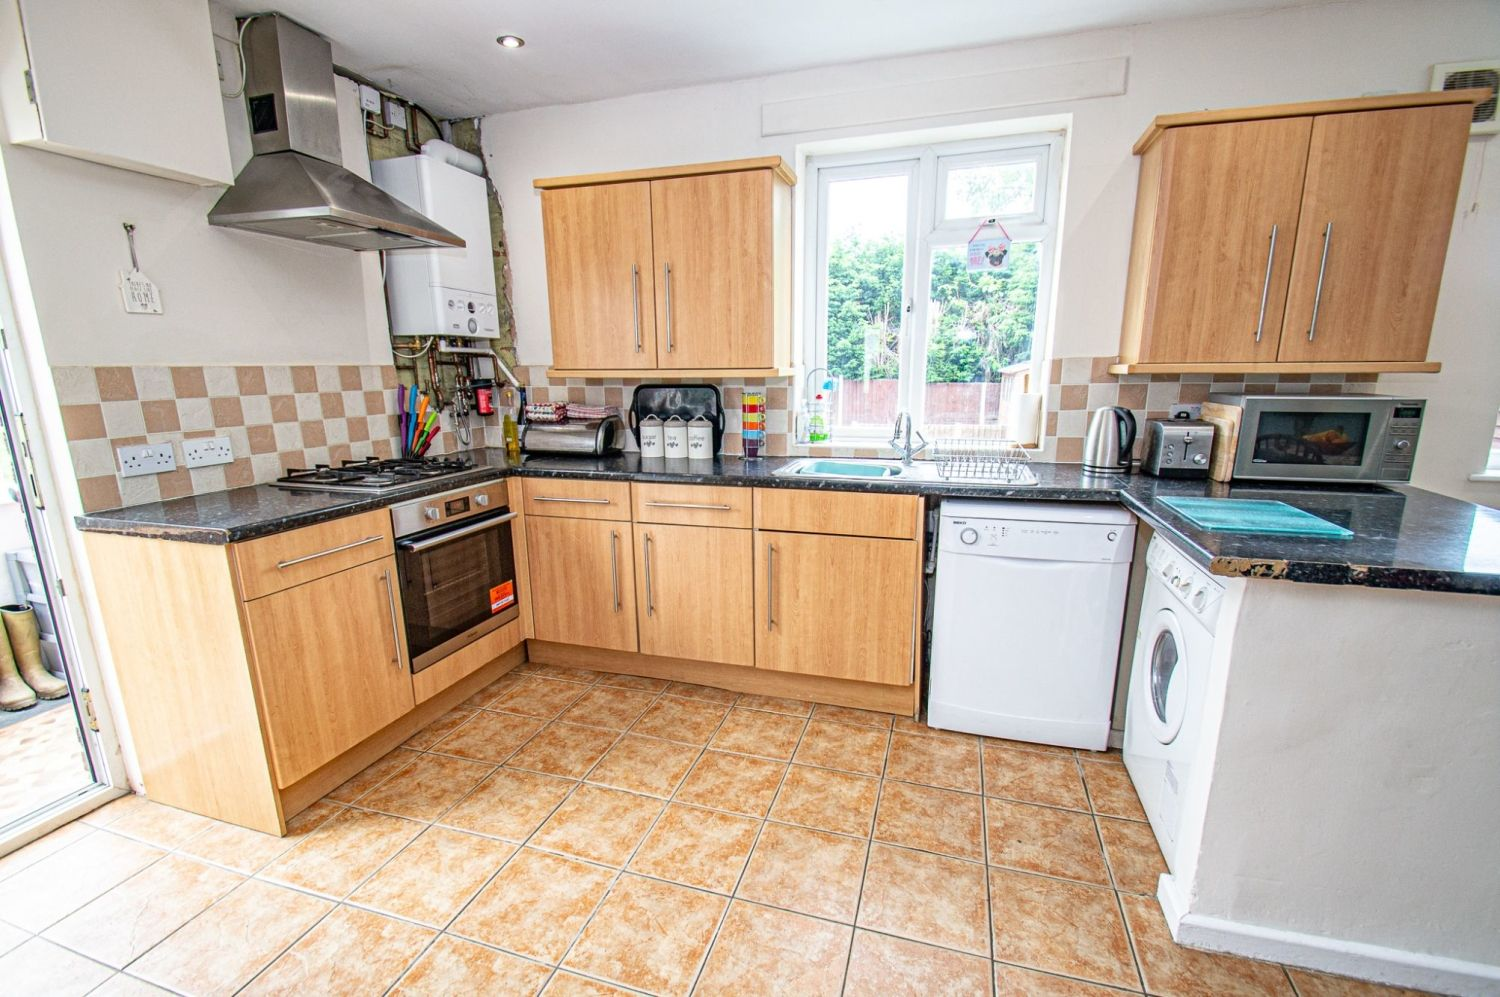 3 bed semi-detached for sale in Gauden Road, Wollescote  - Property Image 3